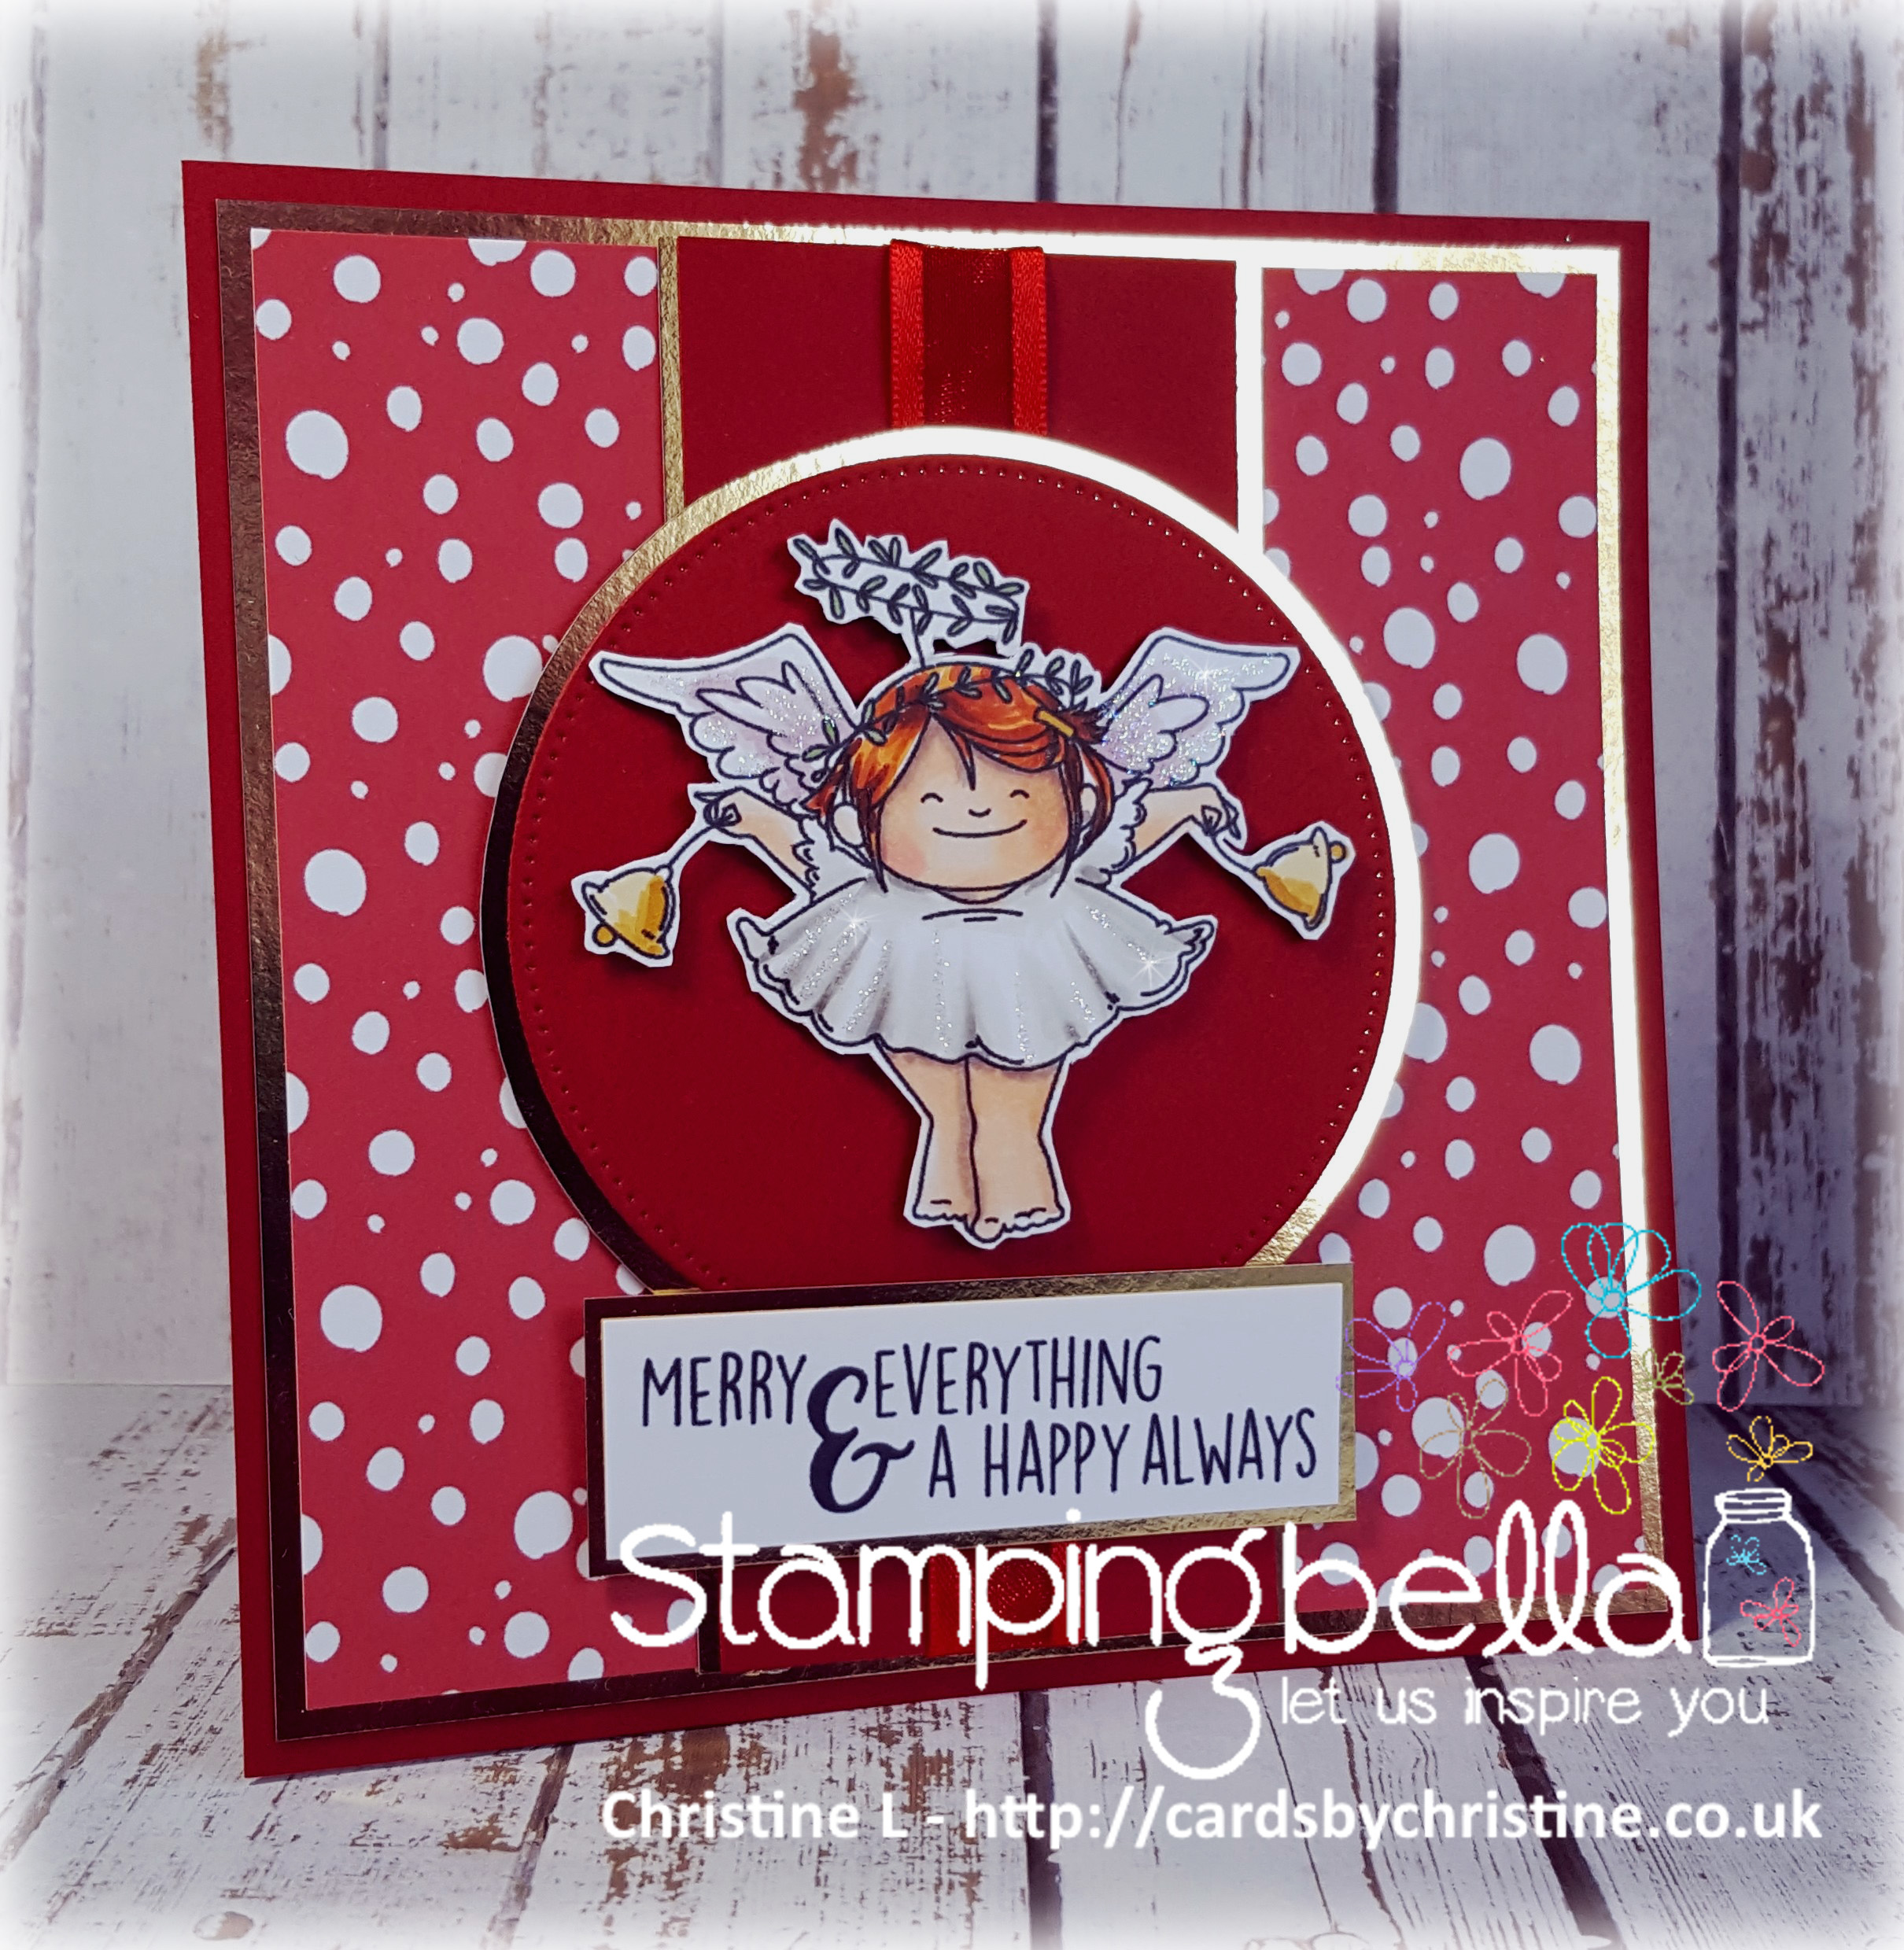 Stamping Bella RUBBER STAMPS: Stamps used: SQUIDGY ANGEL ORNAMENT and BELLS set card by Christine Levison